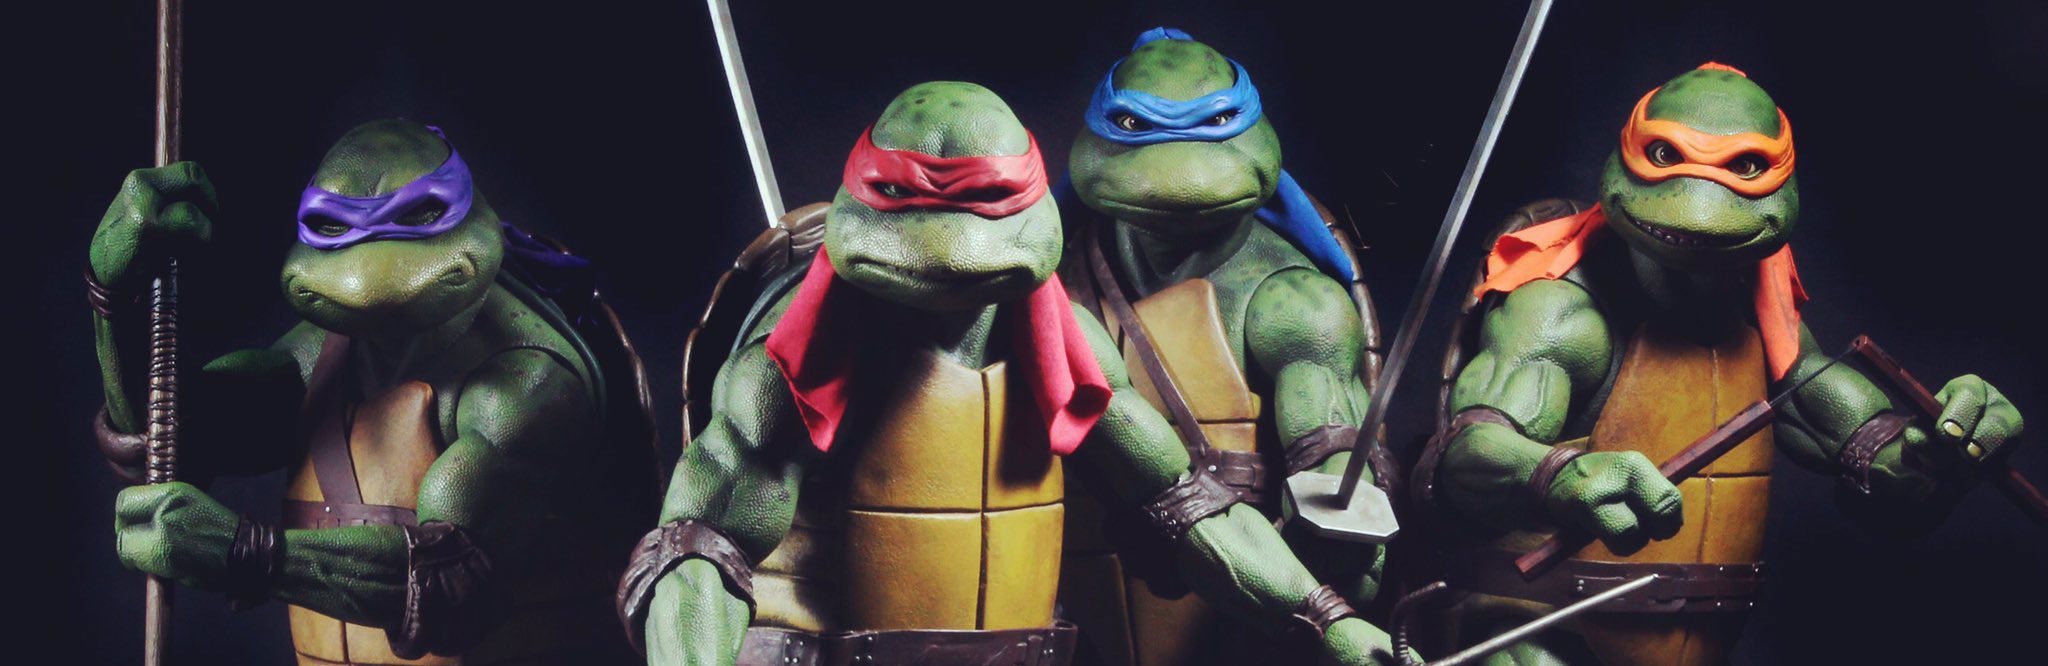 neca-tmnt-movie-action-figures